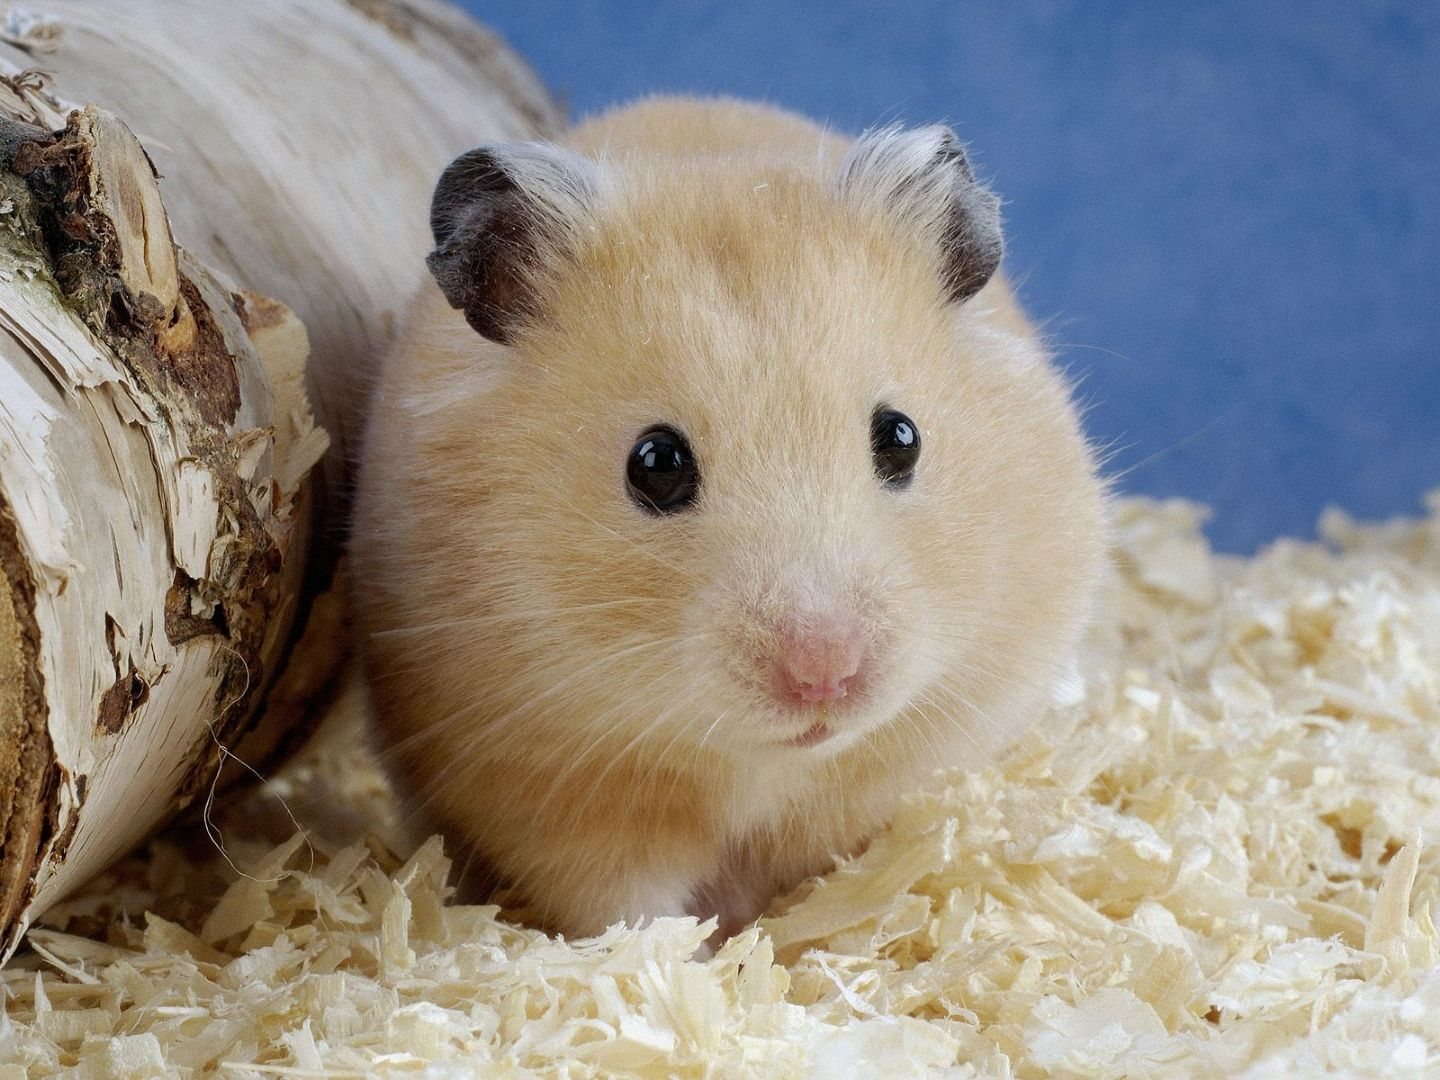 Hamster Wallpapers Fun Animals Wiki Videos Pictures 1440x1080